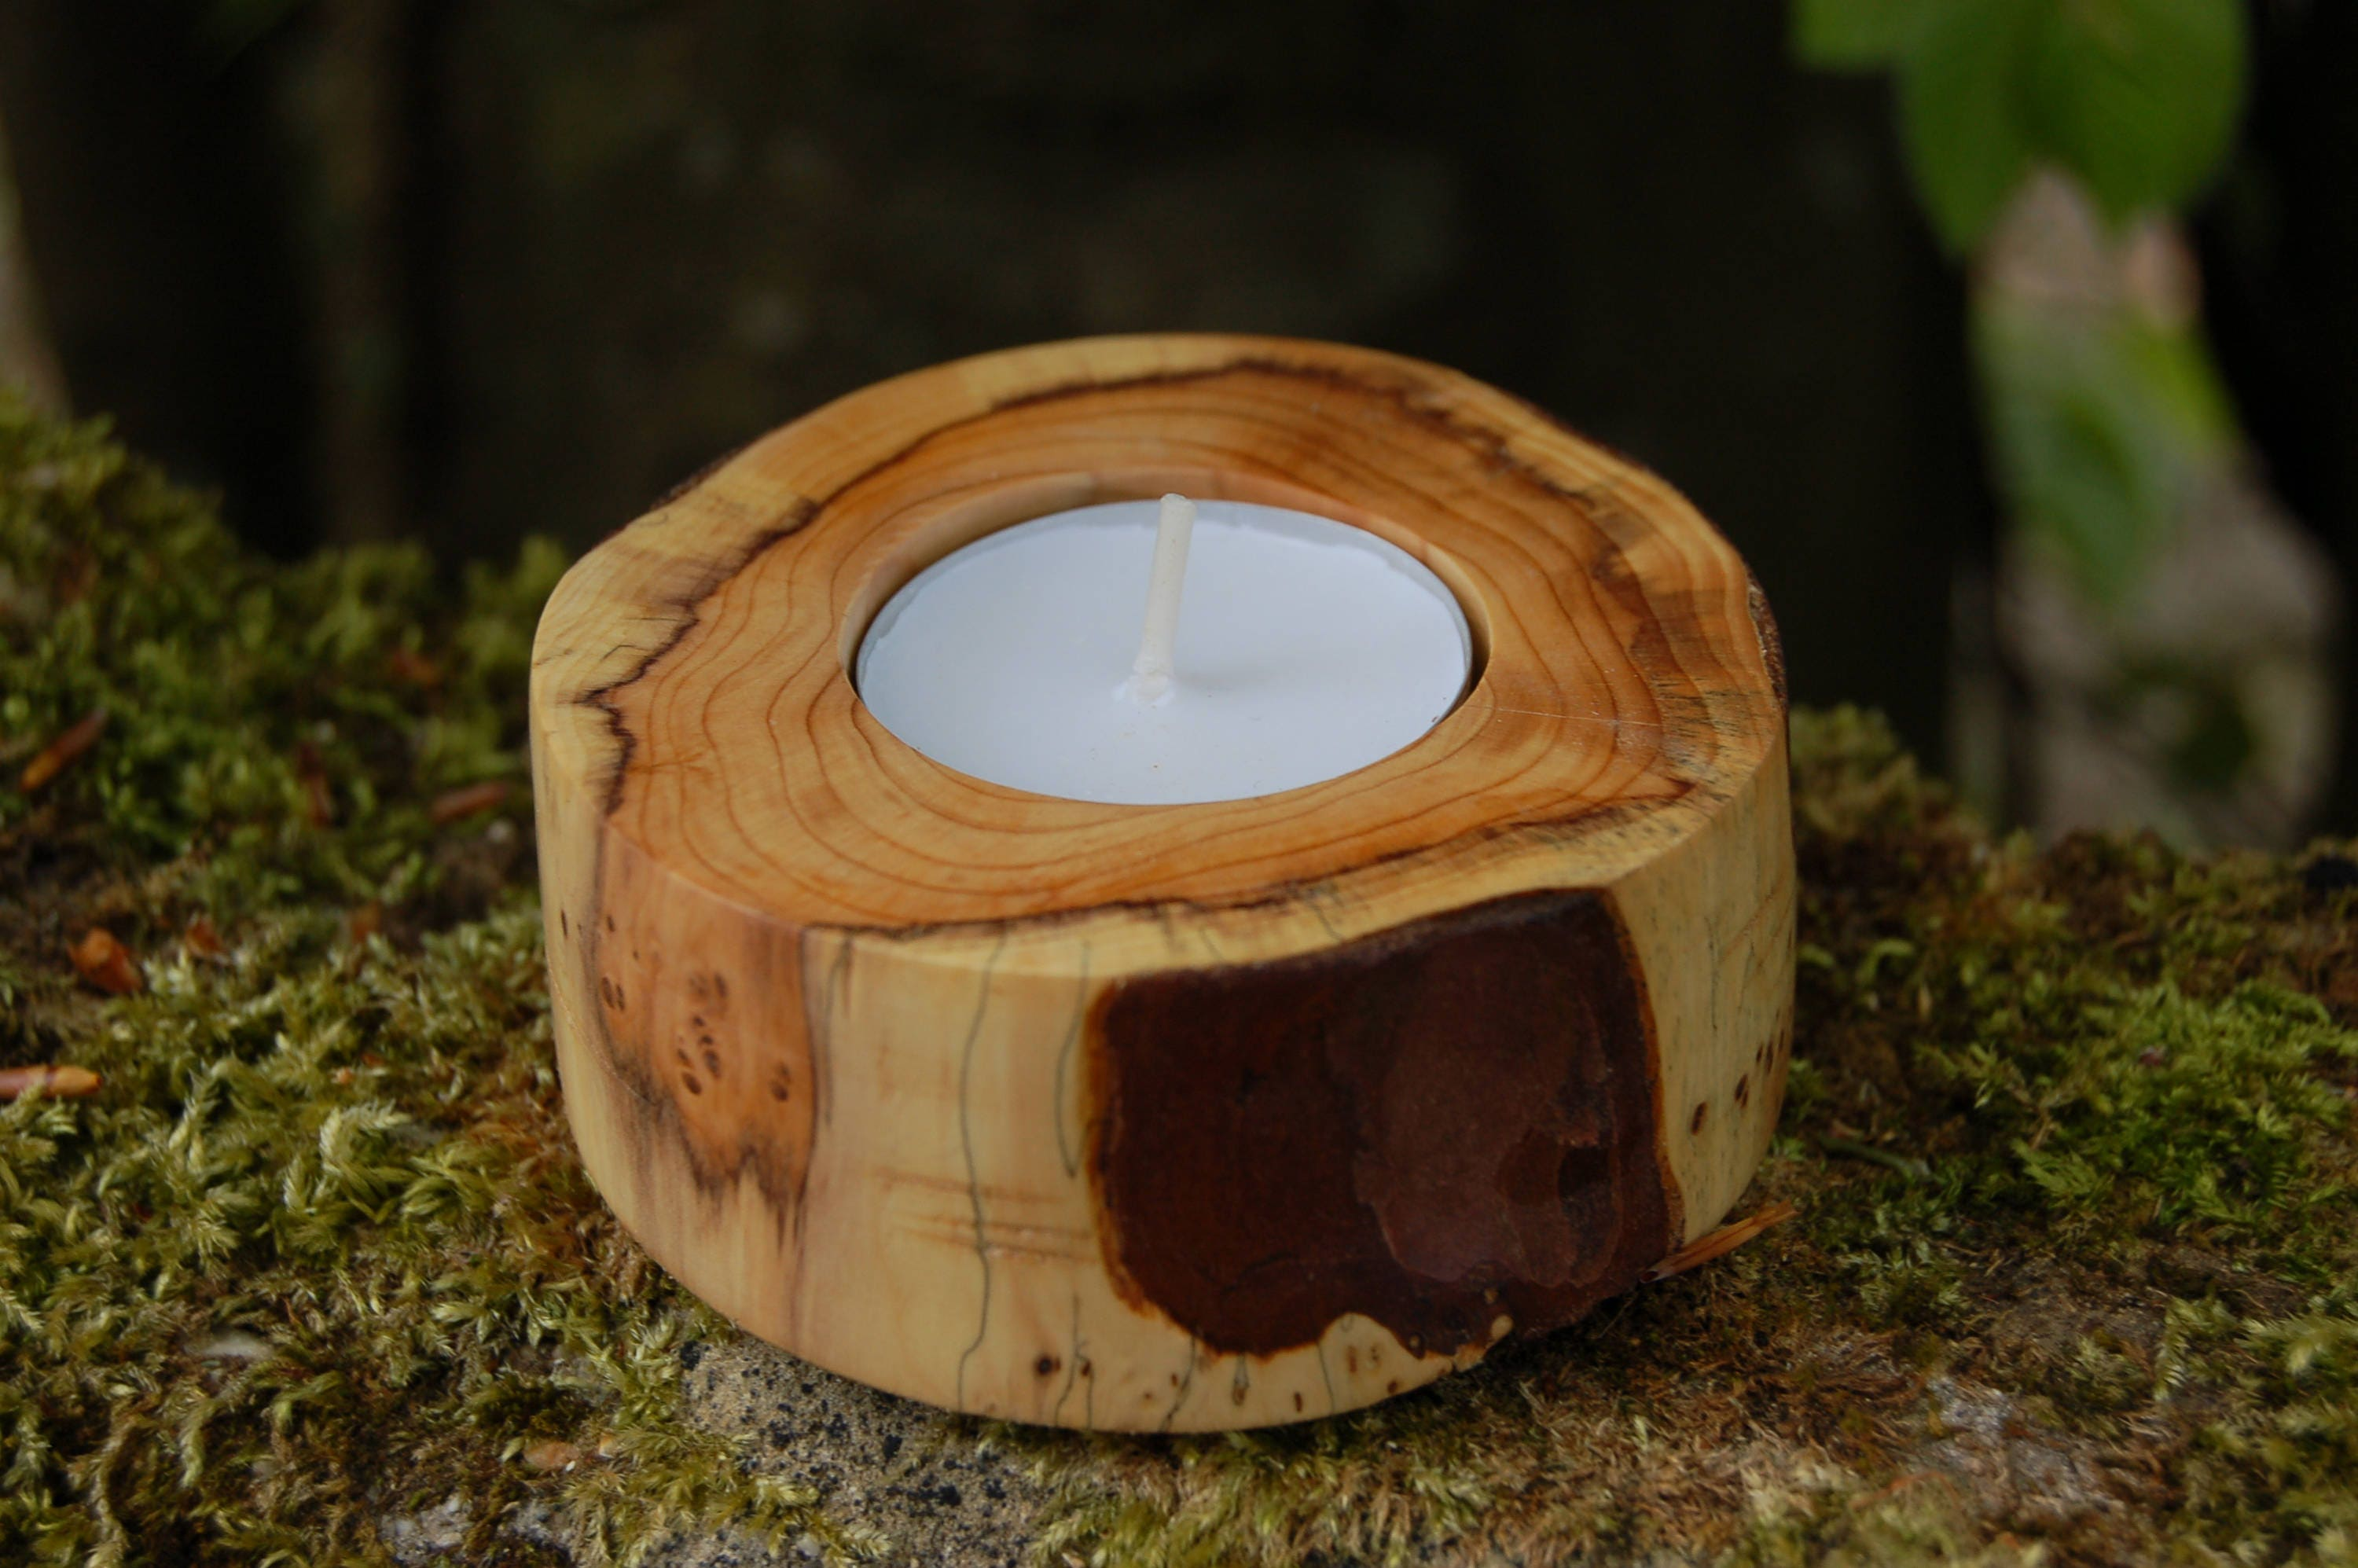 Tealight Holder Yew Tea Light Holder Candle Holder Wooden Tealight Holder Wooden Tea Light Holder Yew Wood Candle Holder New Forest